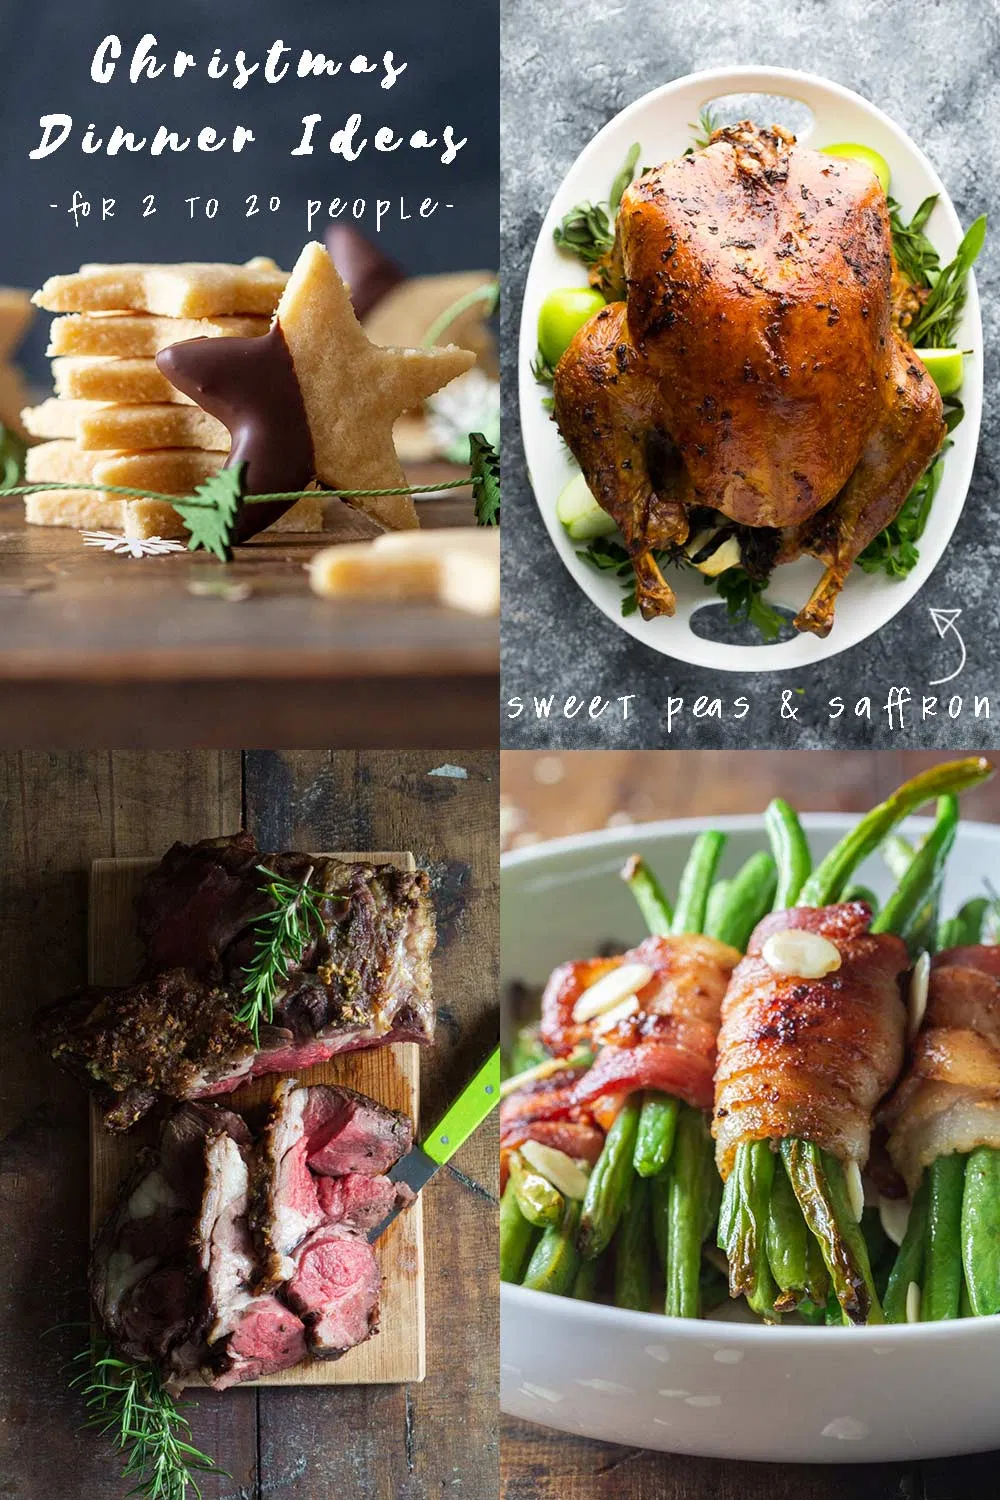 Make your life easy these holidays by cooking these delicious Christmas recipes that your family will love! Check out some Christmas Menu Ideas for 10-20 people, 4-10 people, and 2-4 people. #christmas #christmasrecipes #holidays #holidaysrecipes #christmasmenu #christmasdinner #dinnerideas#christmasdinner #dinnerideas